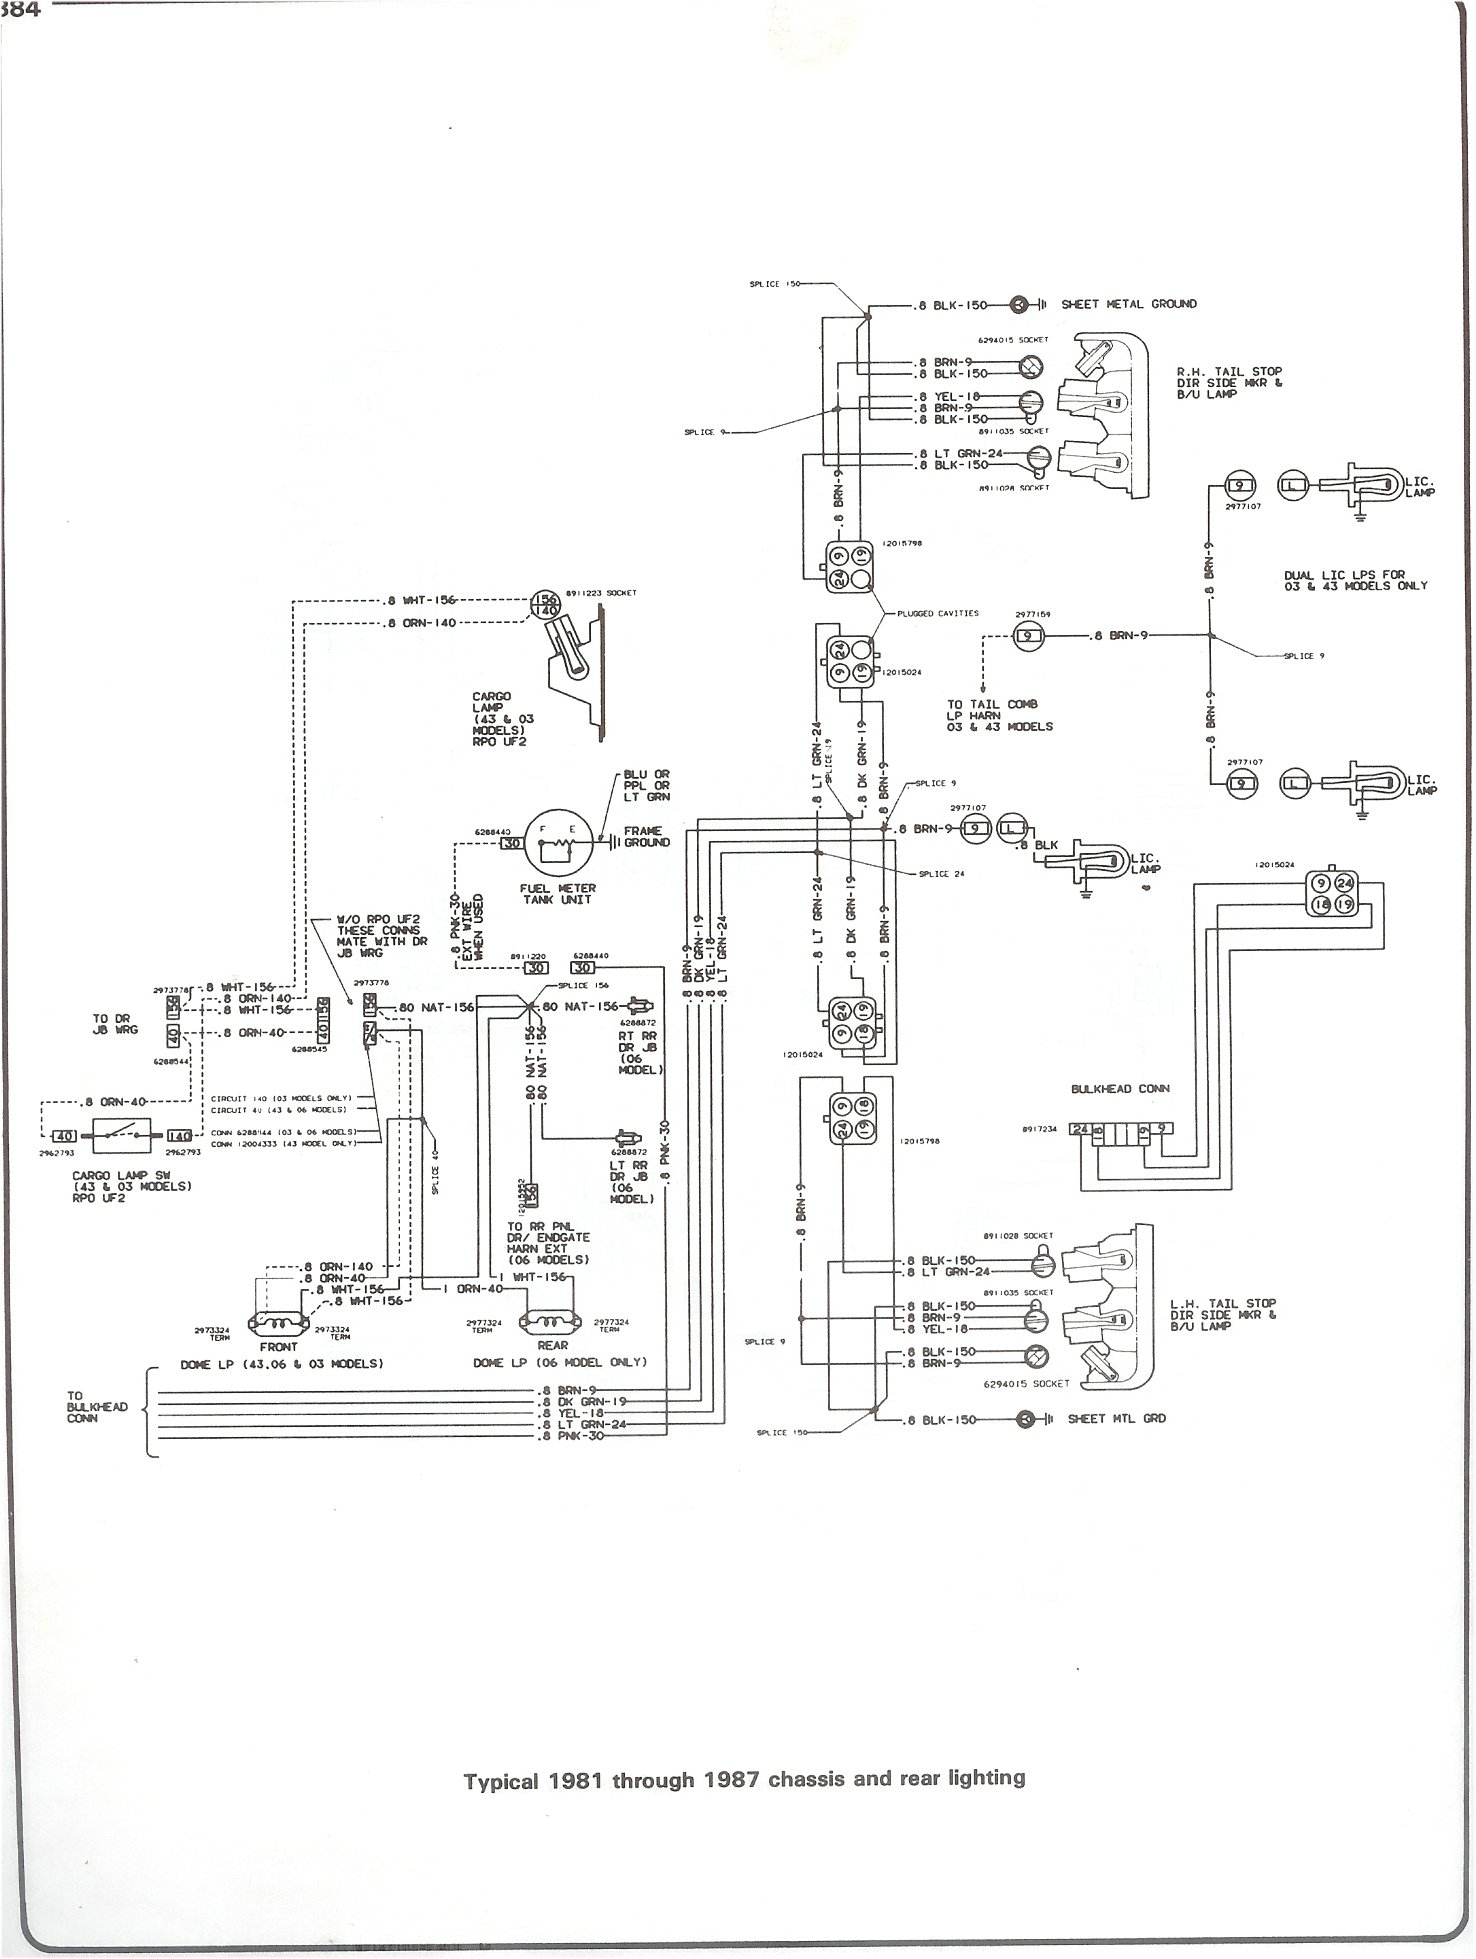 Silverado Drawing At Free For Personal Use 1986 Dodge Ram Fuel Line Diagram 1476x1959 Complete 73 87 Wiring Diagrams